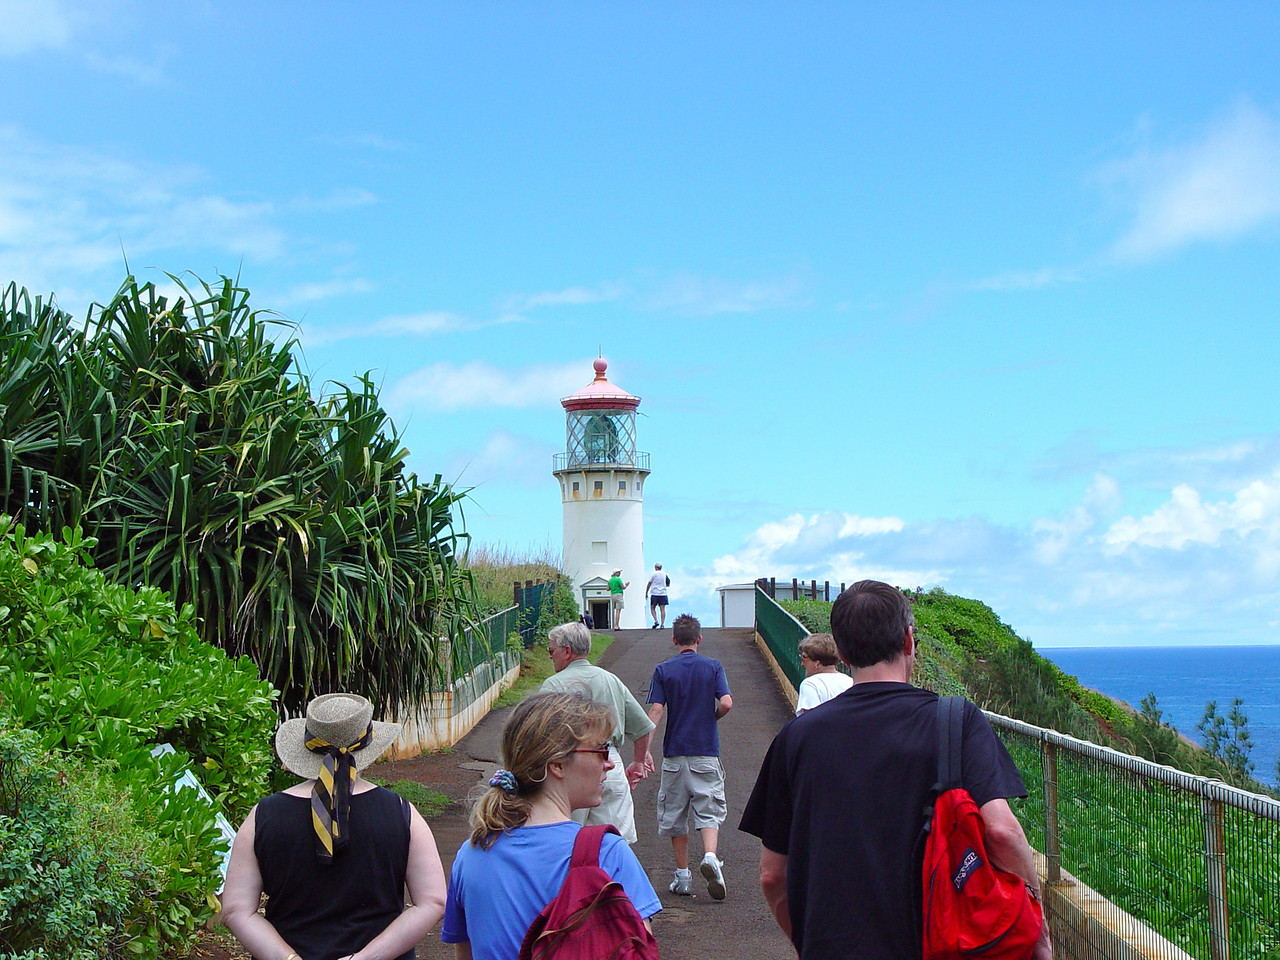 The Kilauea Lighthouse was our first tourist stop.  This famous navigation guide is also the most northern point in the Hawaiian Island chain.